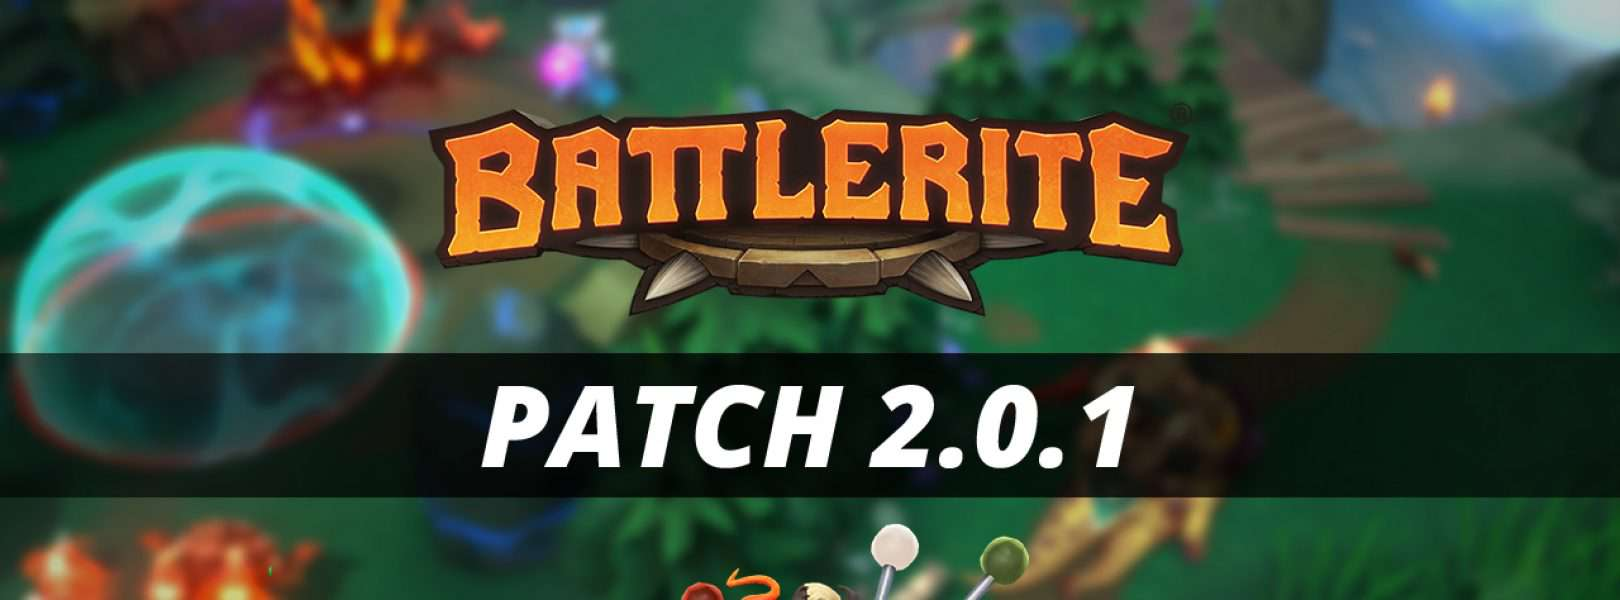 battlerite arena 2 0 1 update Archives - All Patch Notes